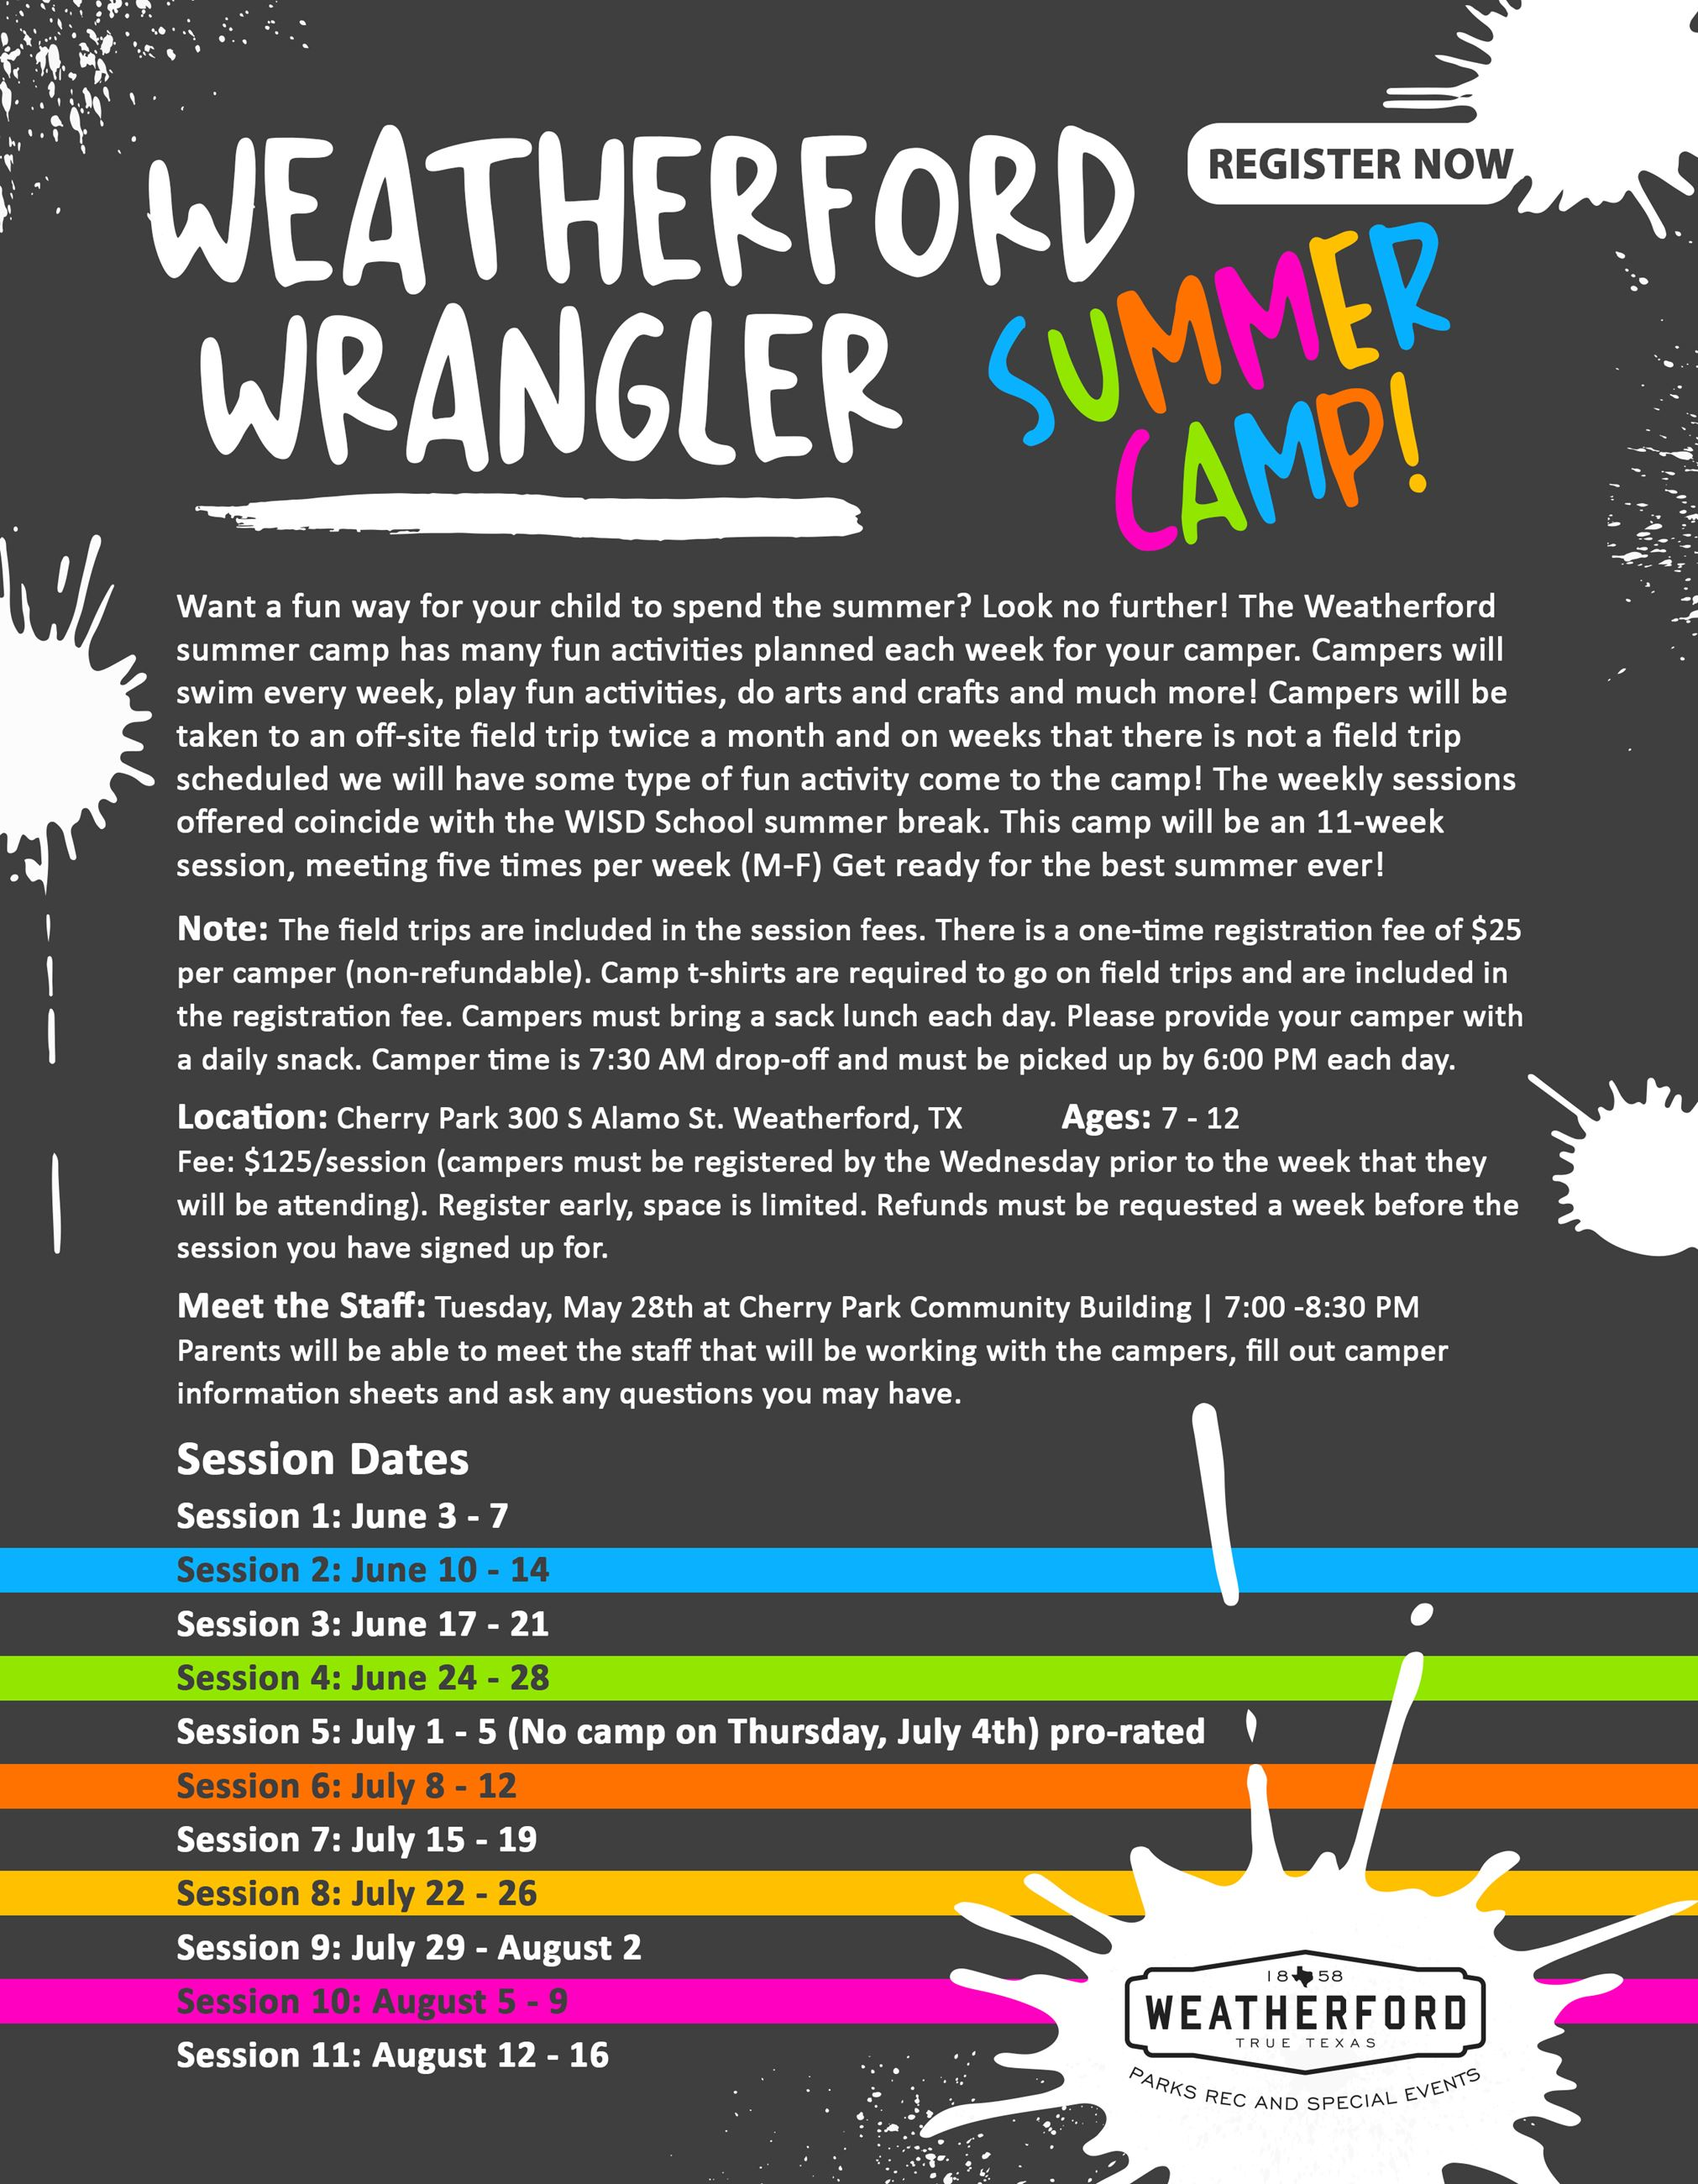 2019 Weatherford Wrangler Summer Camp